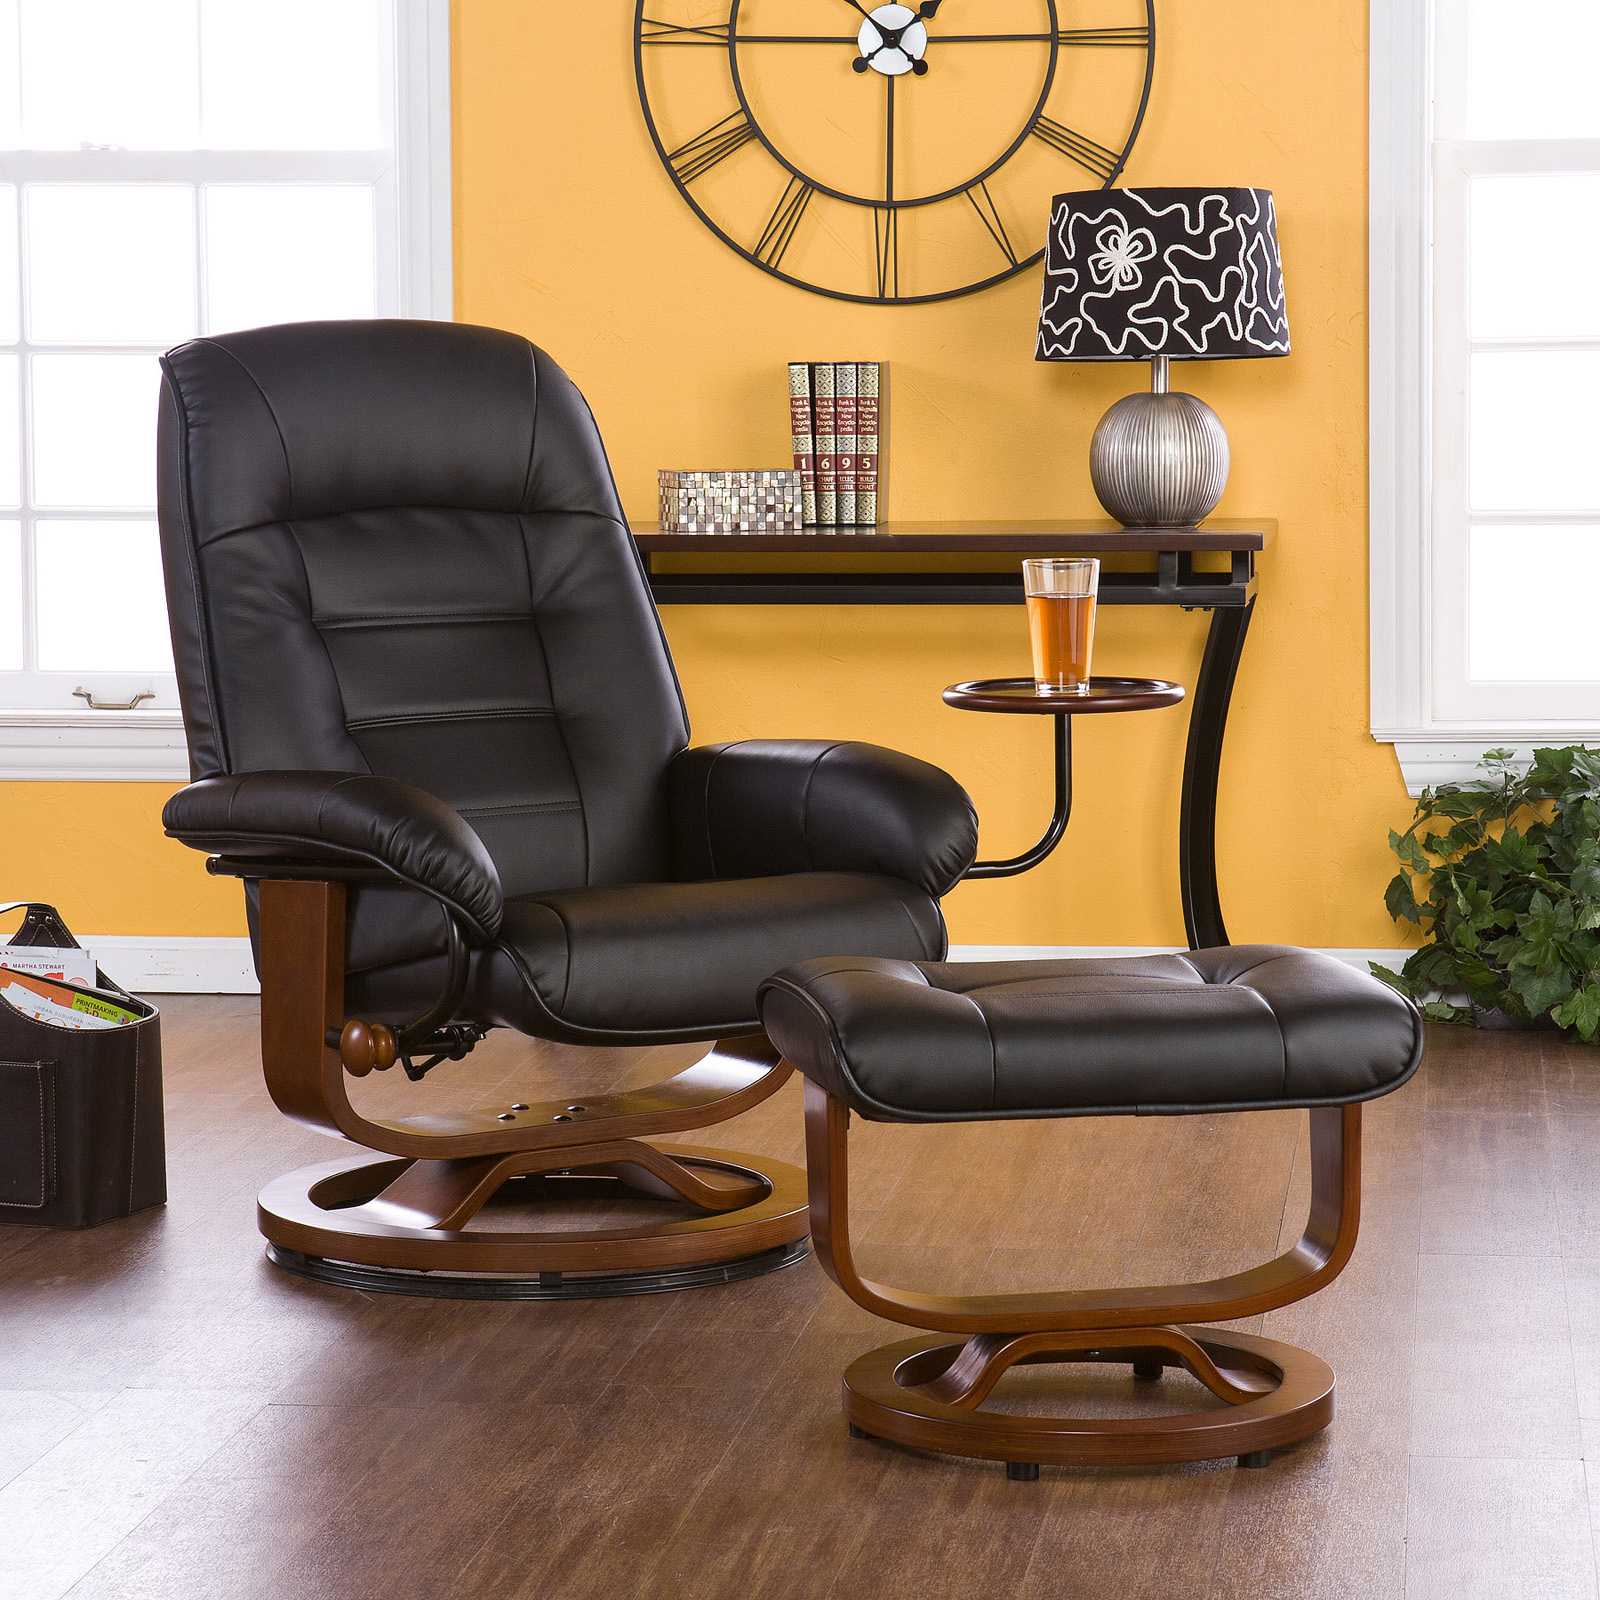 southern enterprises leather swivel recliner with ottoman recliners at hayneedle - Black Leather Recliner Chair